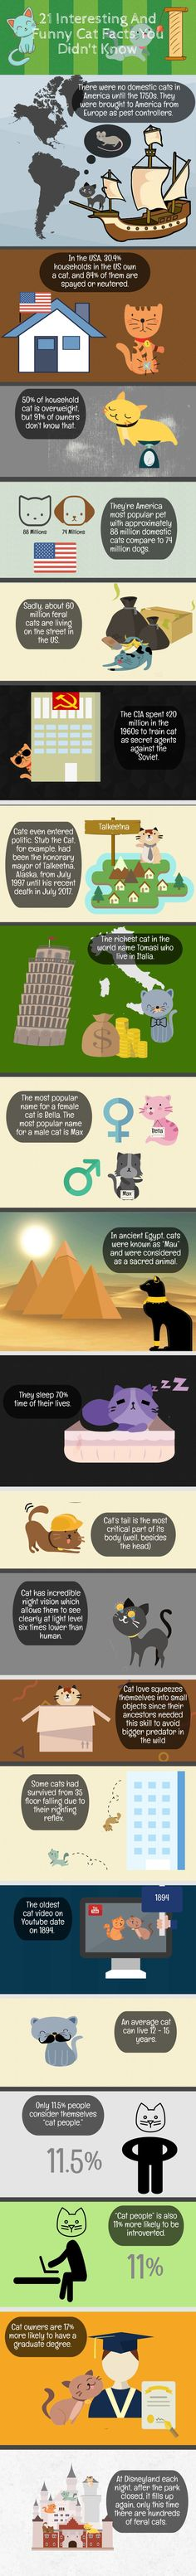 Infographic: 21 Interesting and Funny Cat Facts You Didn't Know check this fantastic photo from Katzenworld